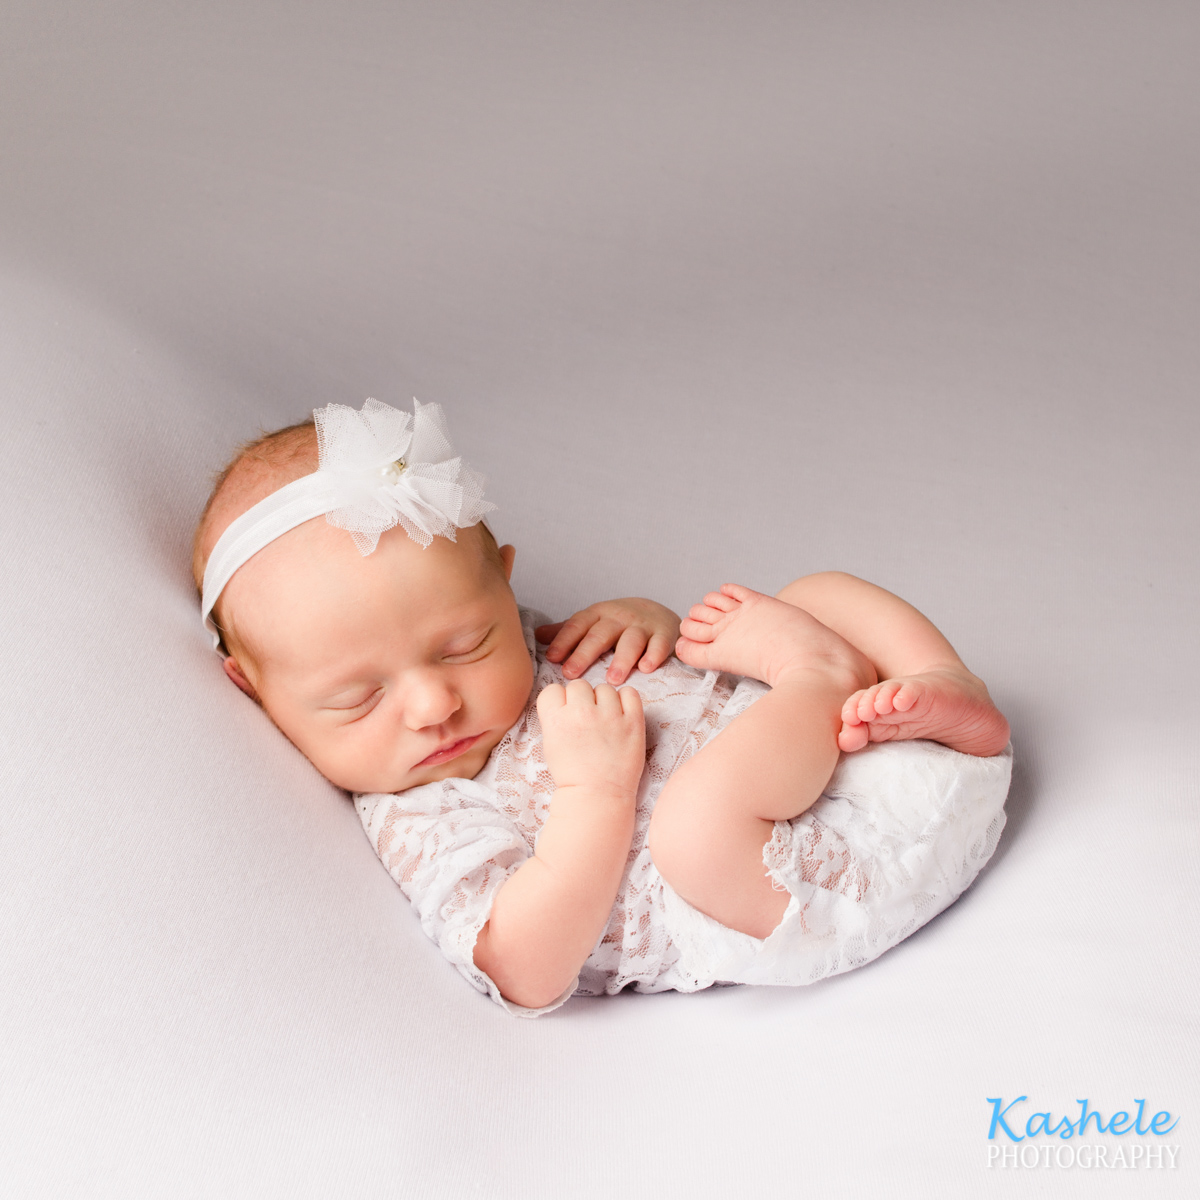 Baby in huck fin pose for utah newborn photographer post